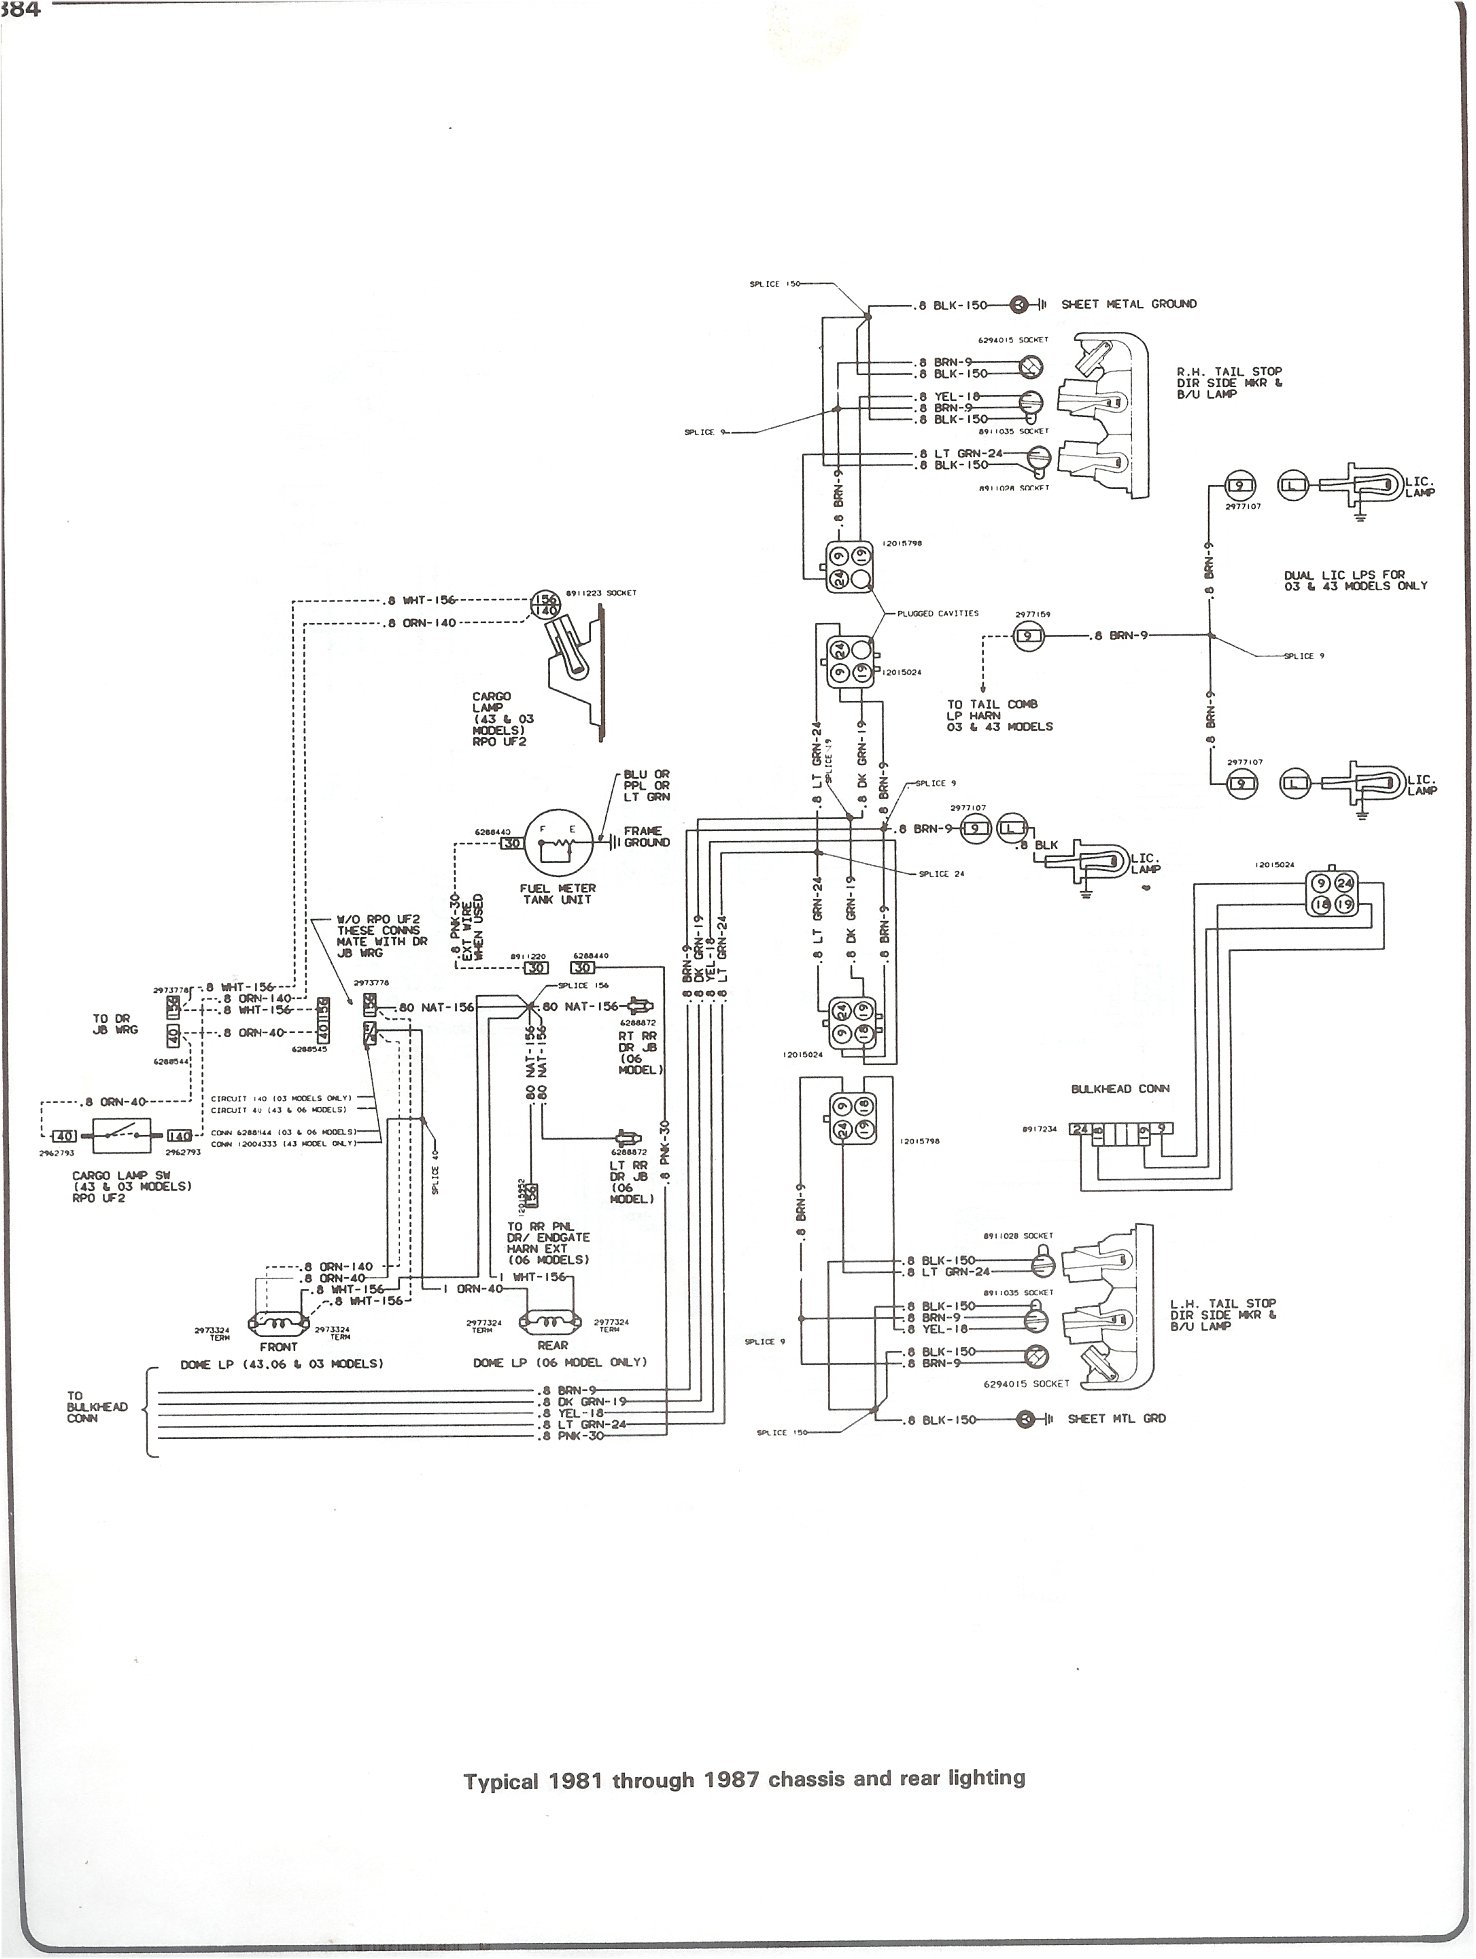 chevrolet cruise control diagram house wiring diagram symbols u2022 rh maxturner co